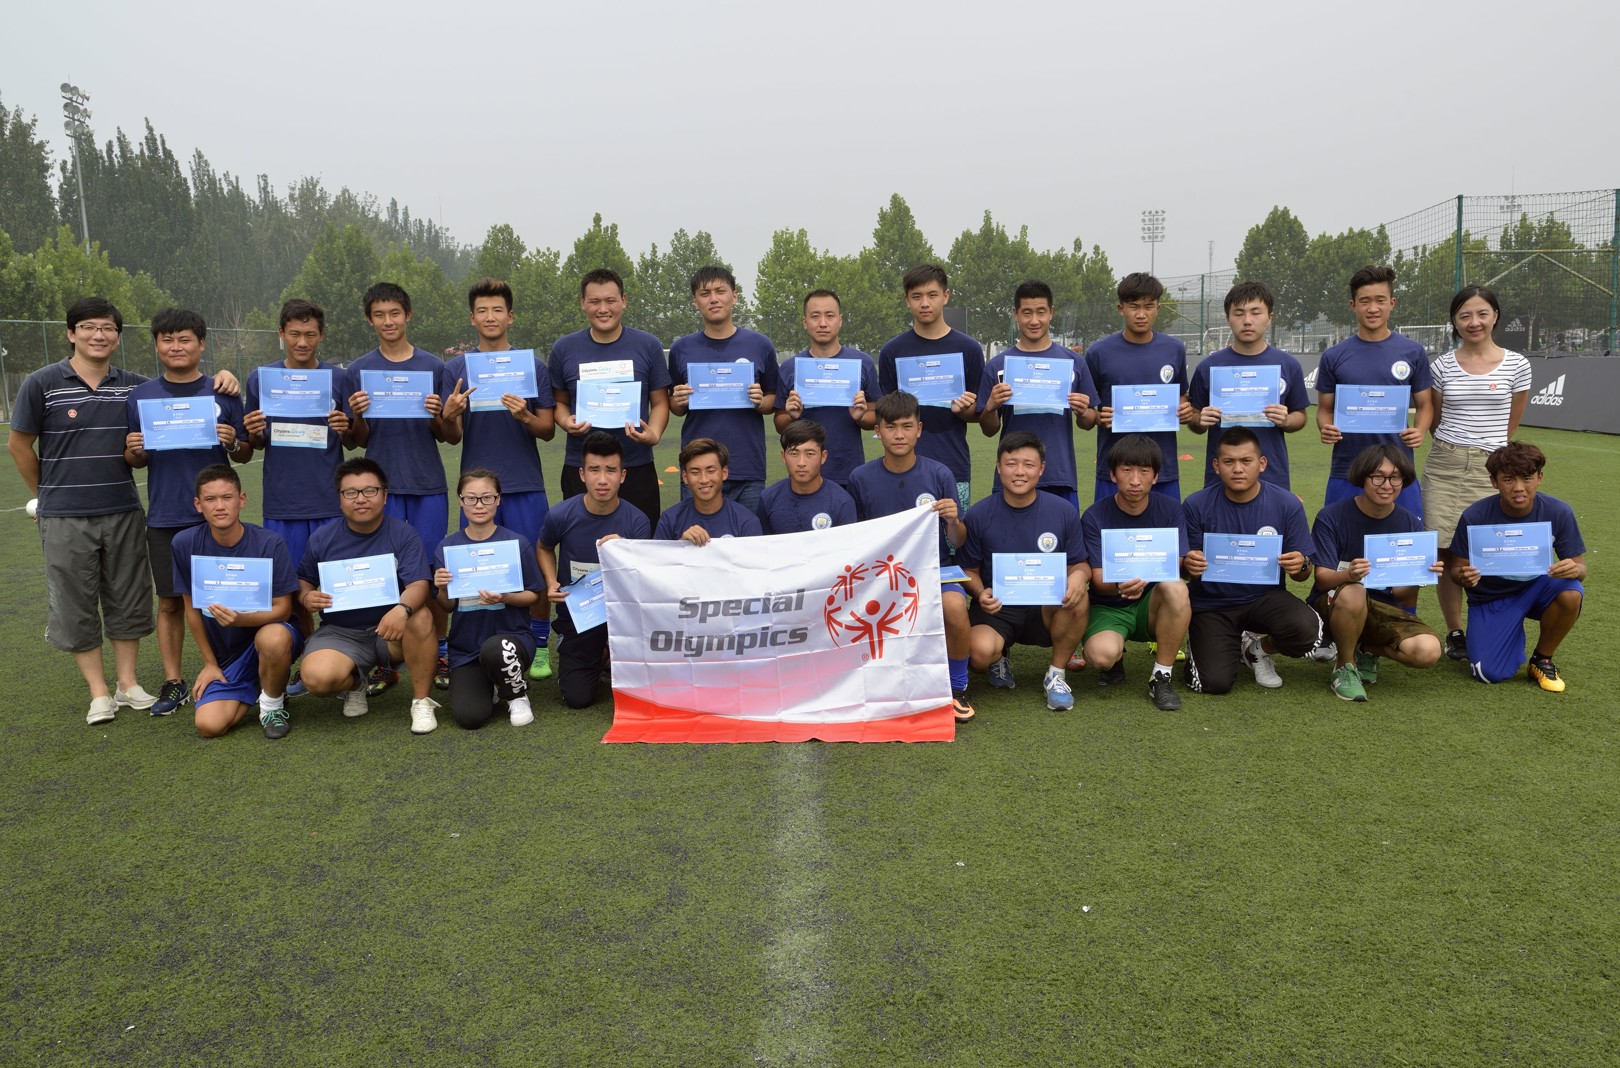 CITYZENS GIVING: 24 young leaders were part of the three-day course offering cutting edge training in community football.